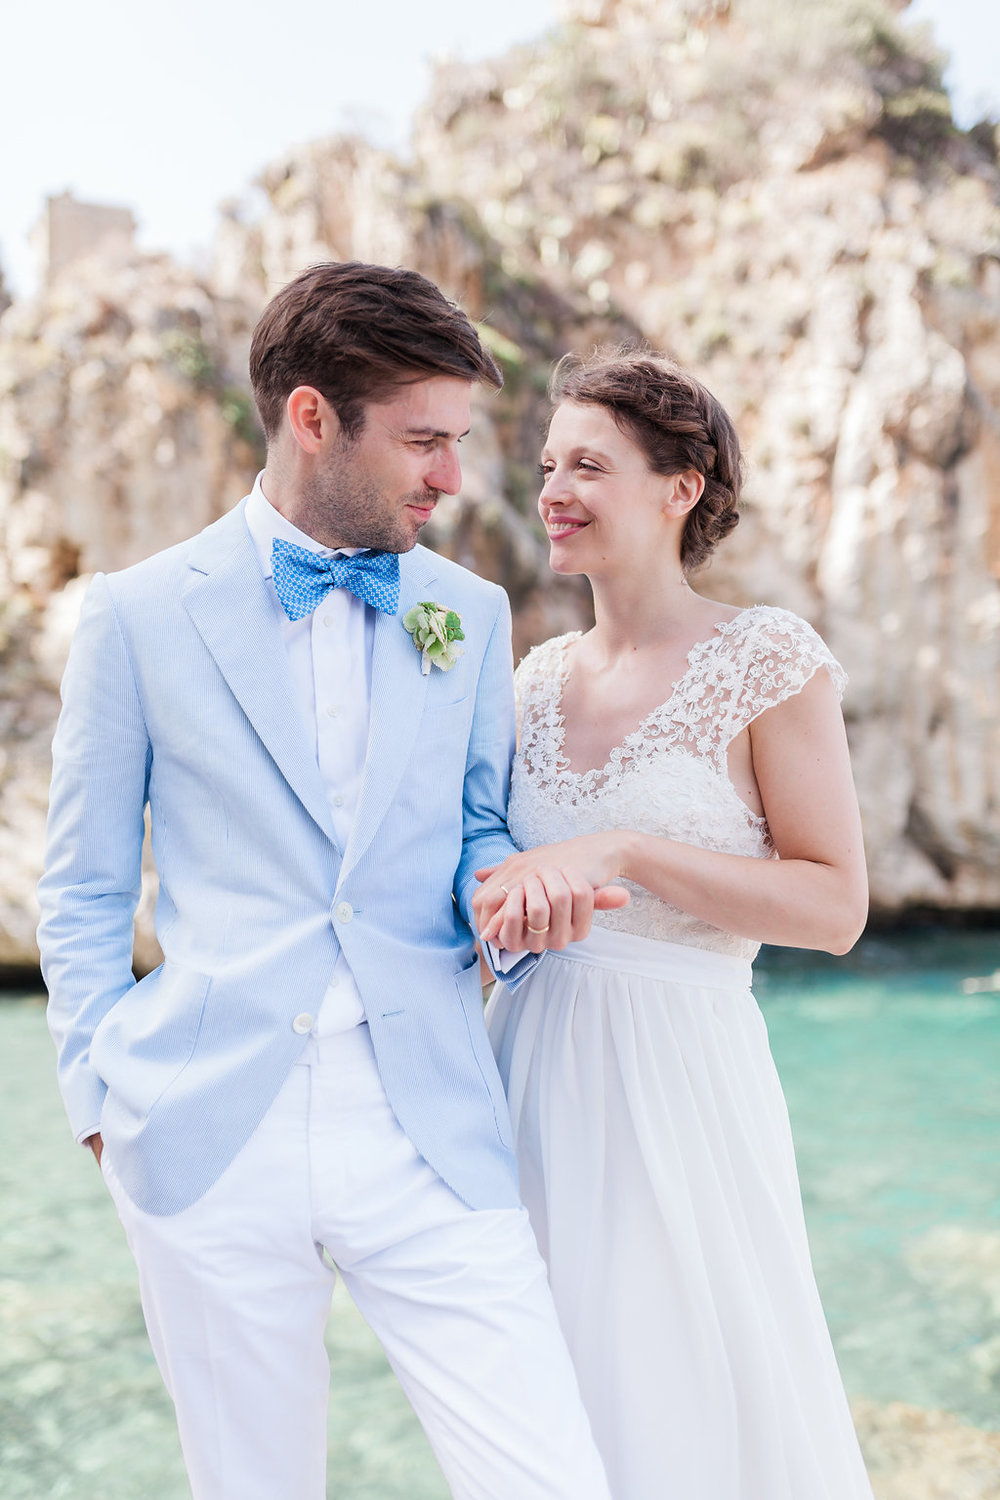 Mariella & Philip || A Sicilian Destination Wedding